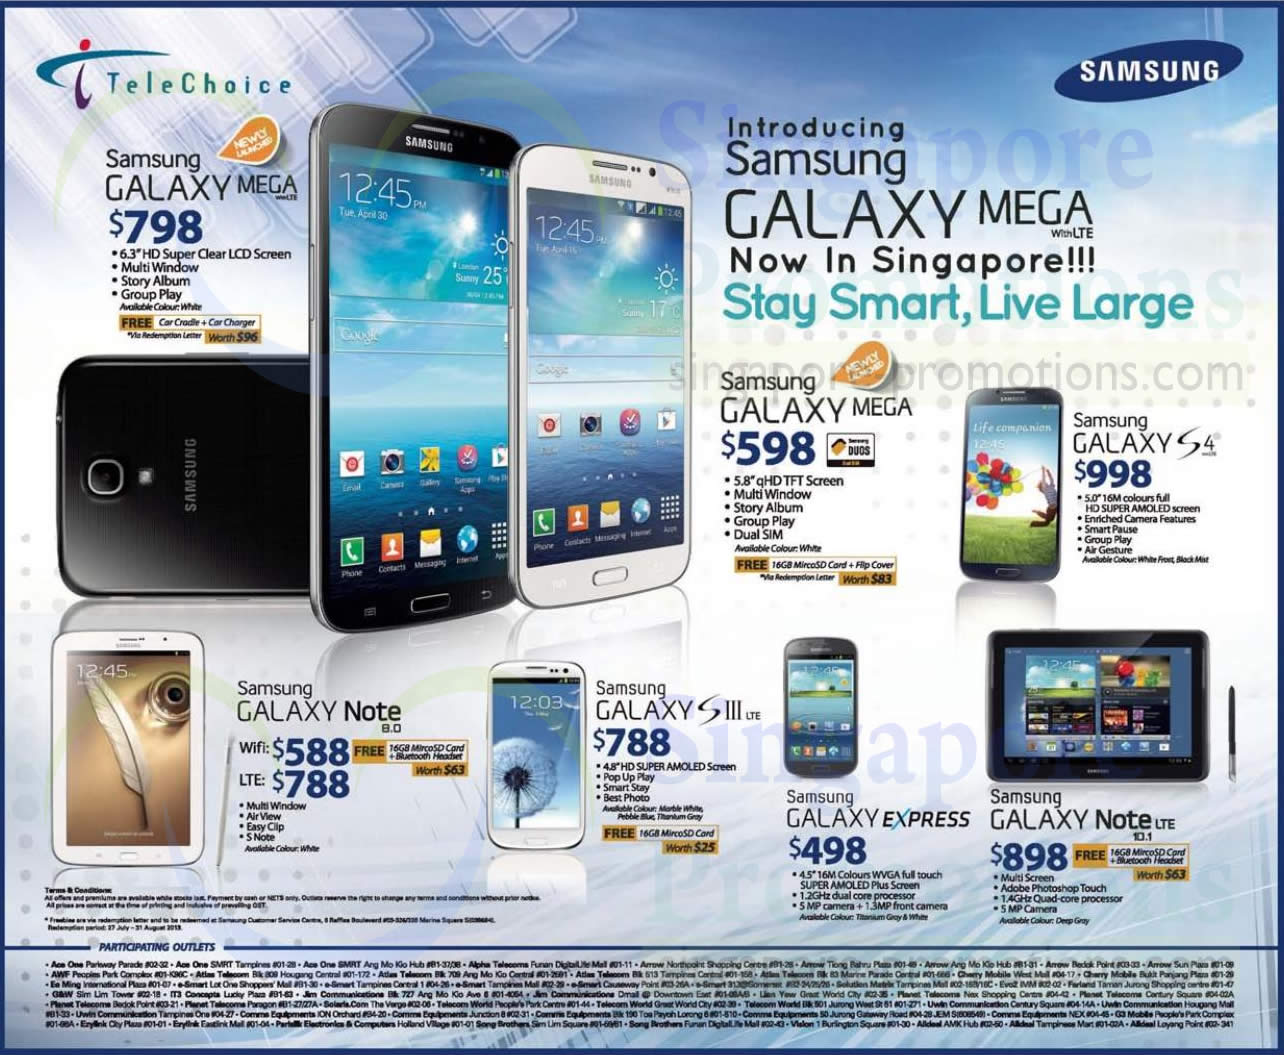 Telechoice 22 Jun 2013